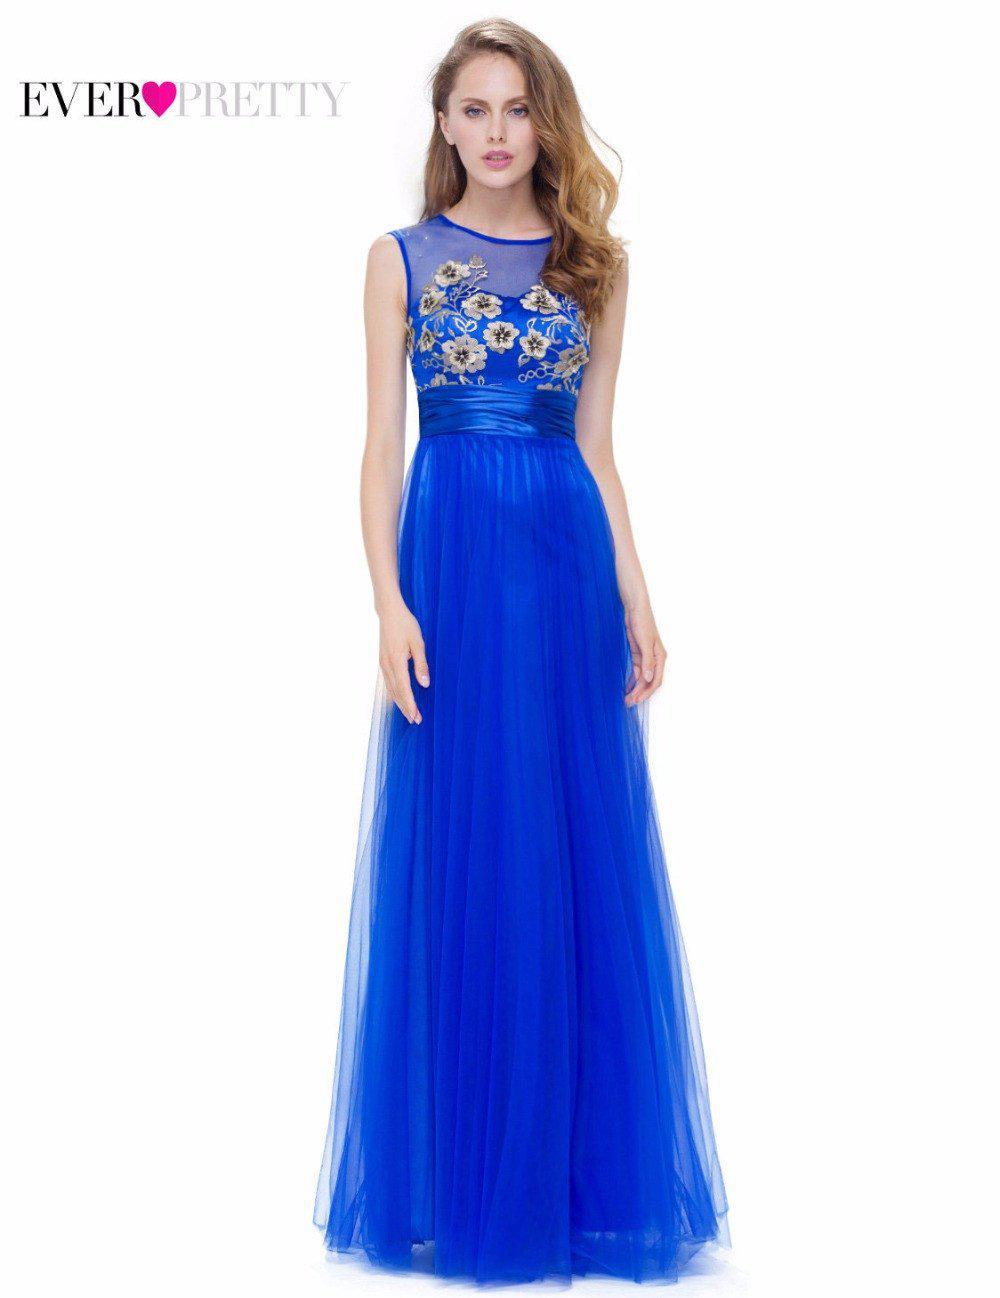 Fashion Sapphire Blue Evening Party Dress A Line Ever Pretty EP08899SB New arrival Women Elegant Sleeveless Long Dress-Dress-SheSimplyShops